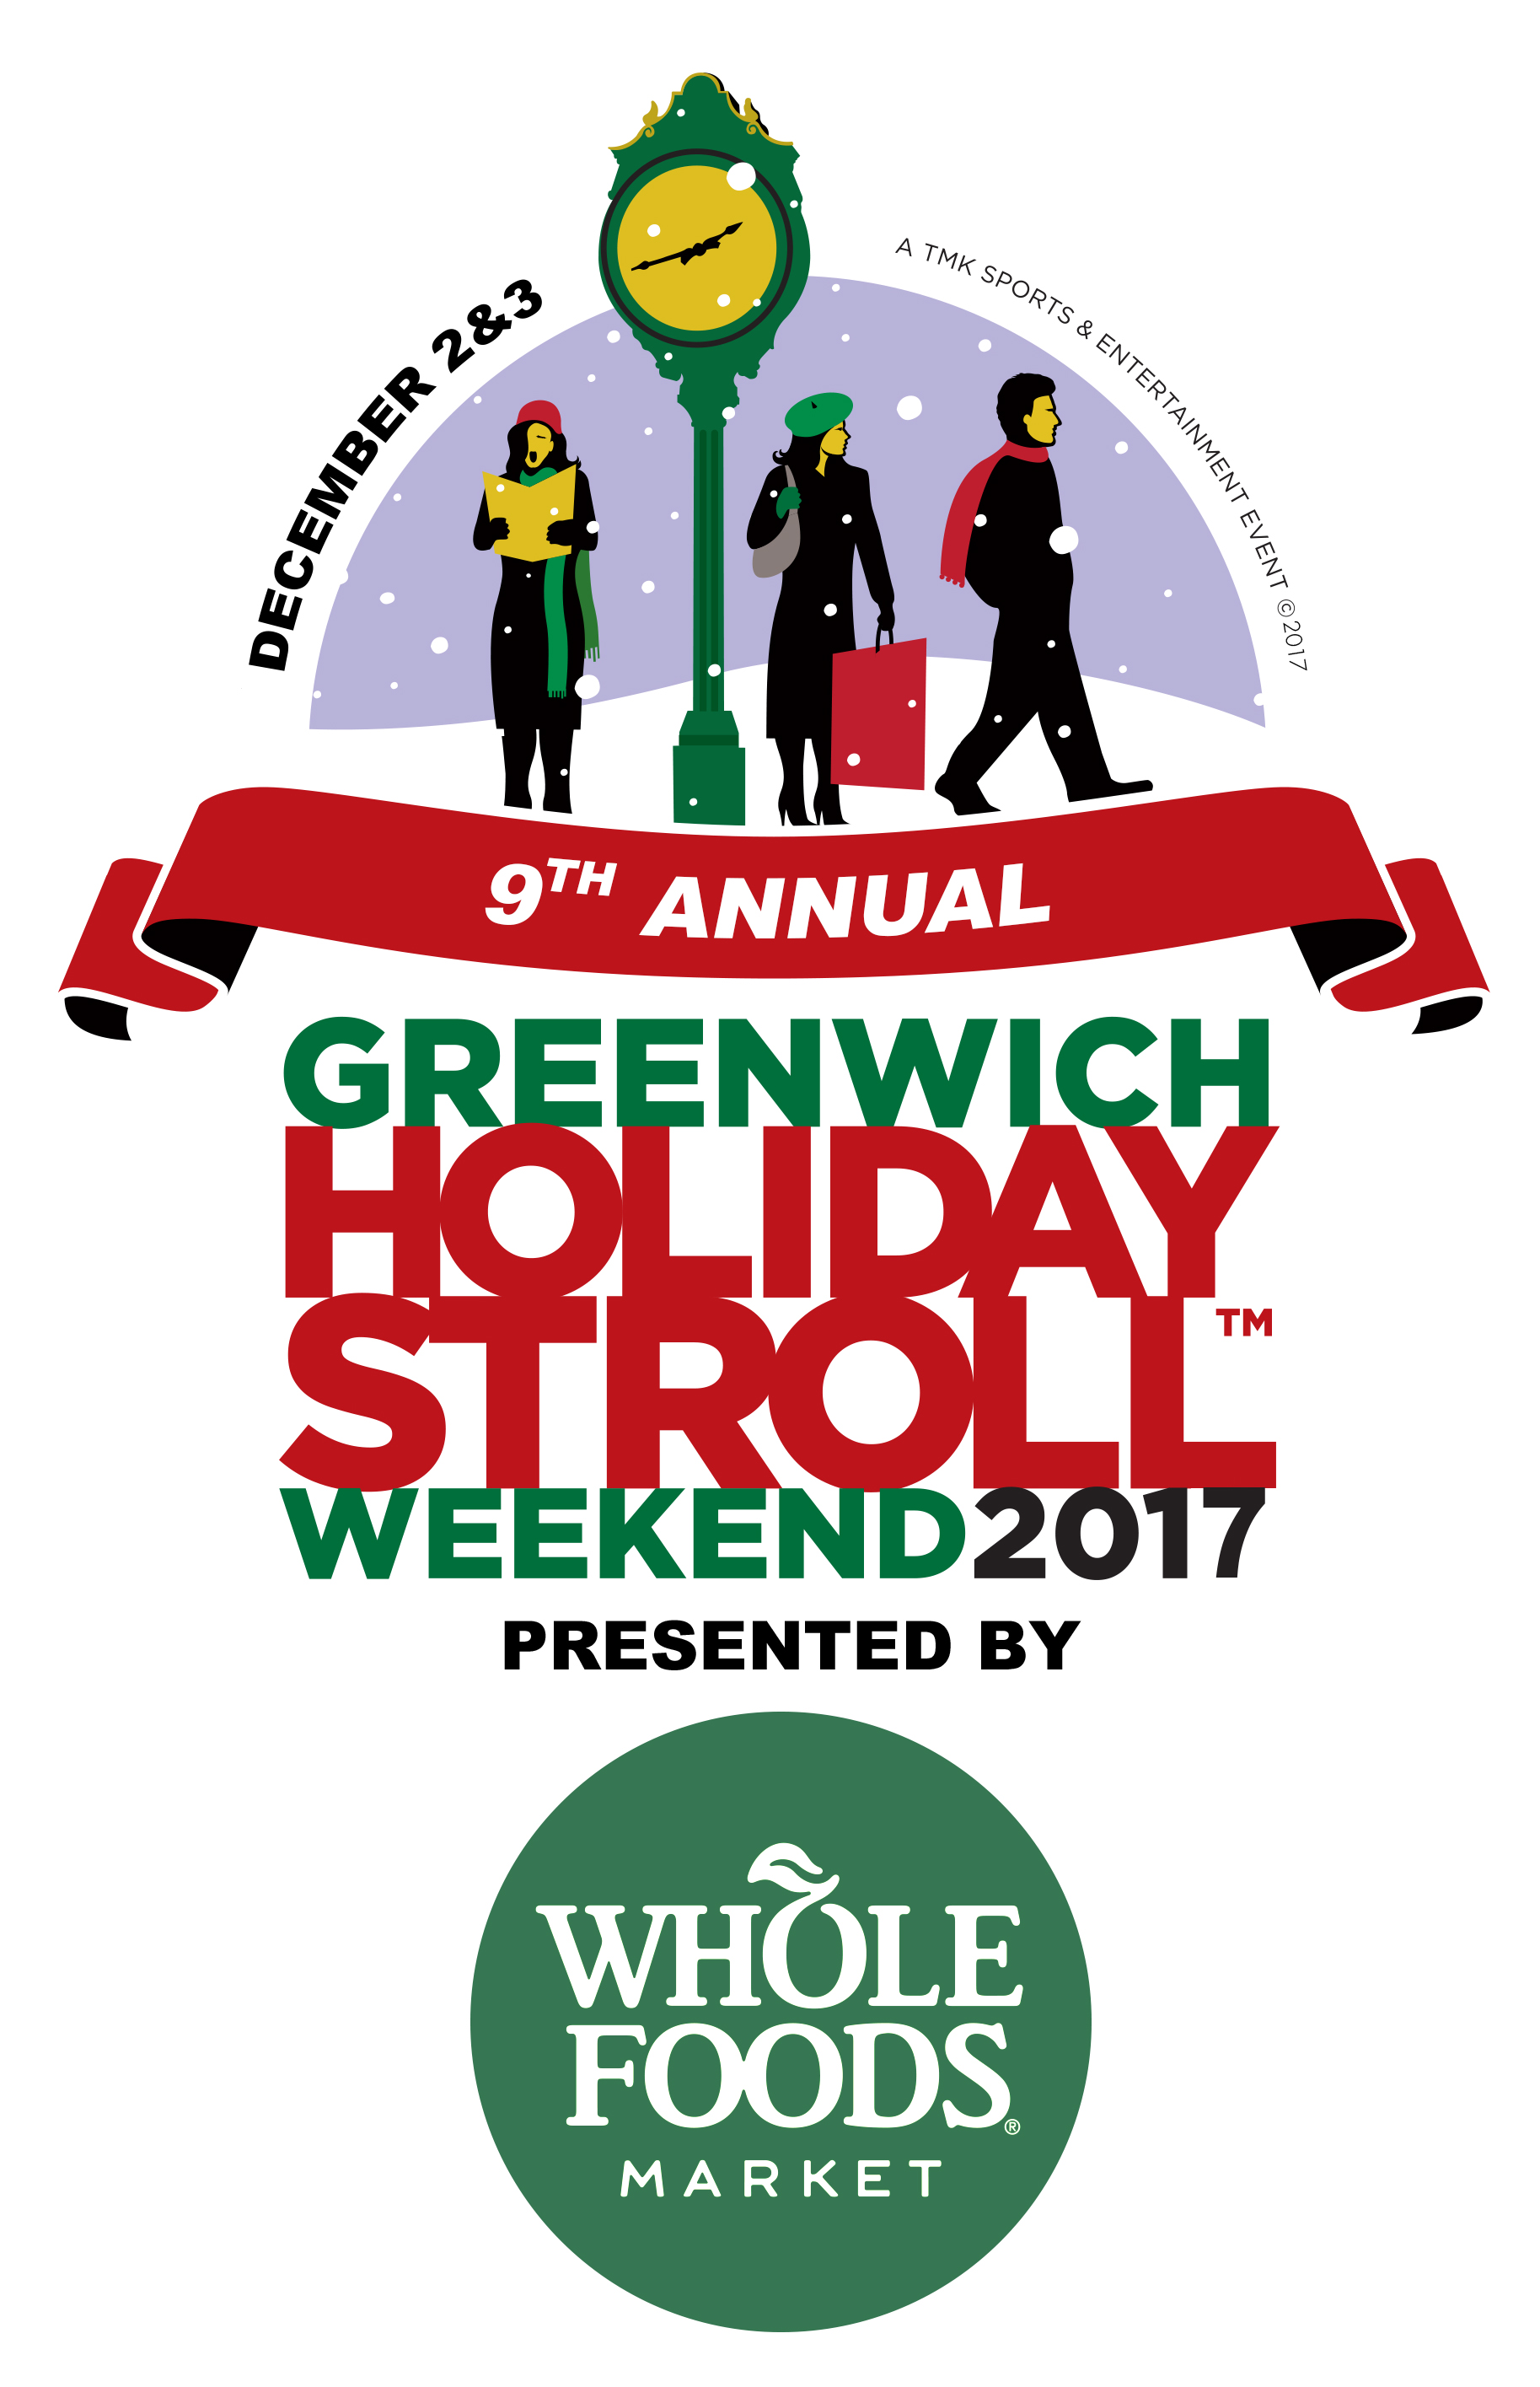 9th Annual Greenwich Holiday Stroll Weekend 2017